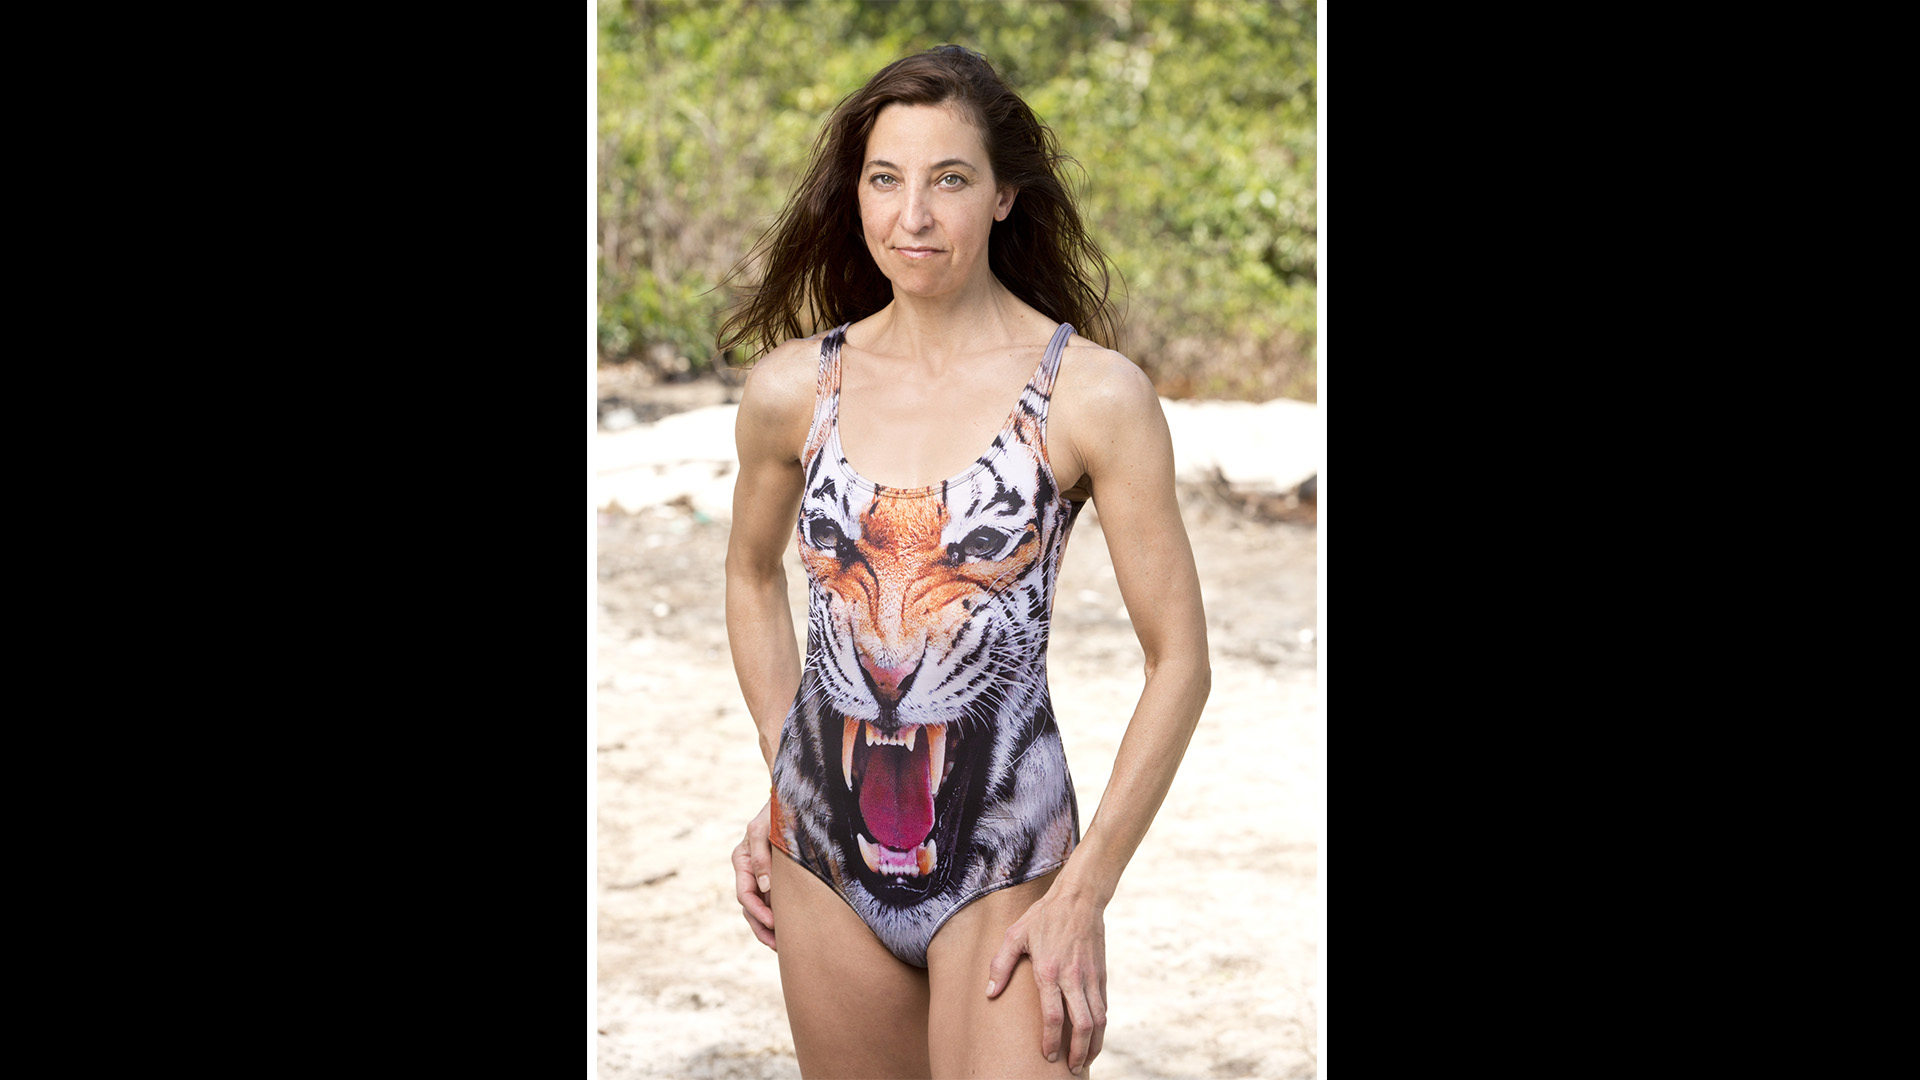 7. What's it like actually playing on Survivor?